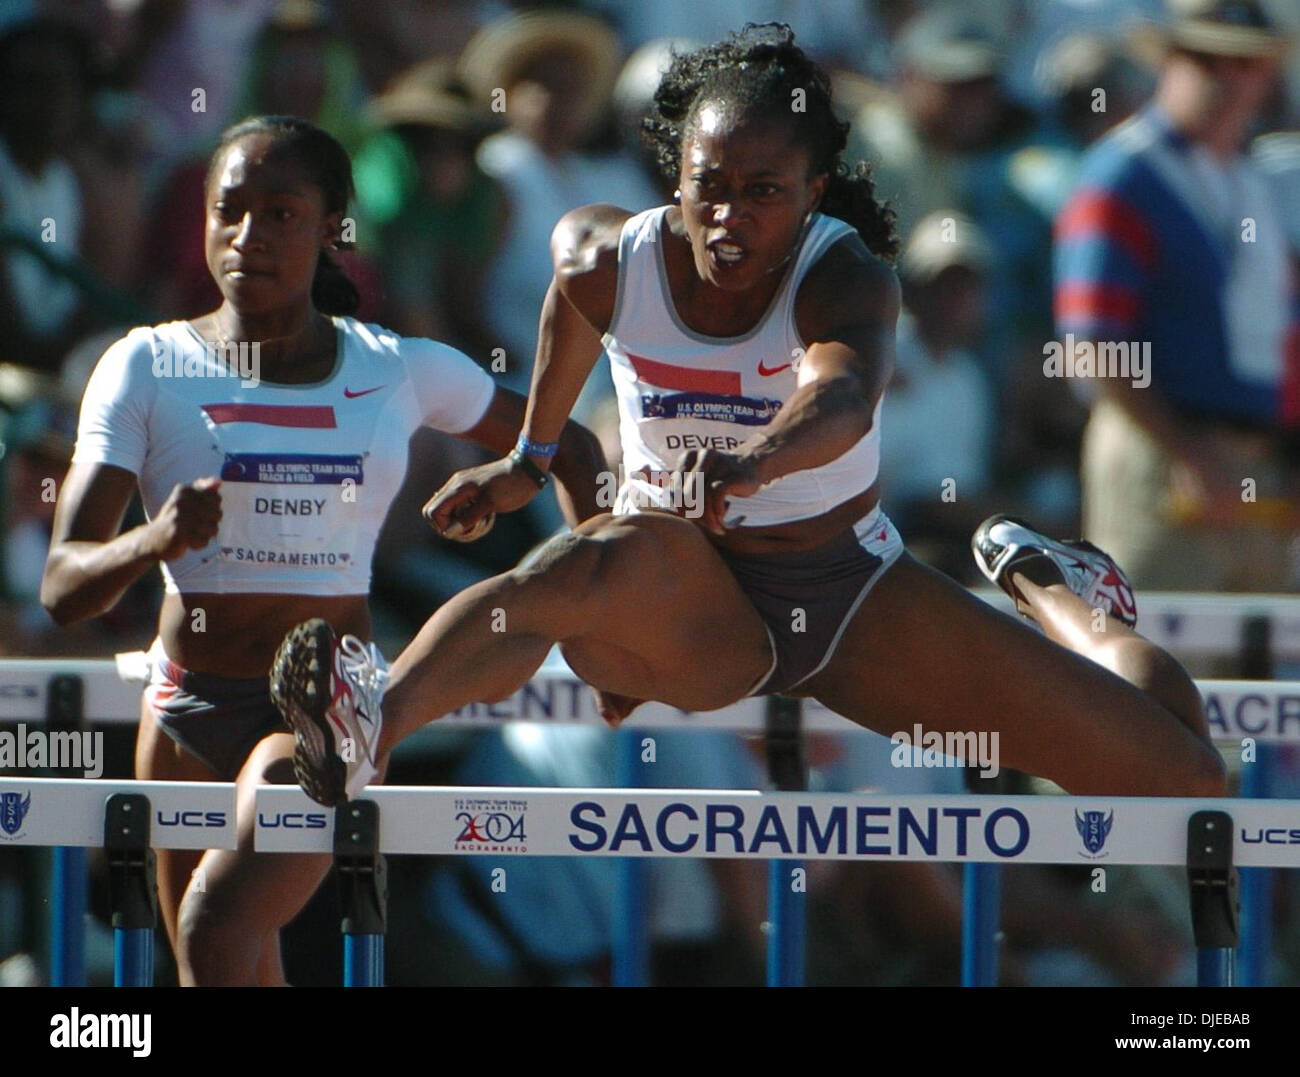 Jul 18, 2004; Sacramento, CA, USA; GAIL DEVERS clears the last hurdle to win the women's 100-meter hurdles with a time of 12.55 seconds on day eight of the 2004 U.S. Track and Field Trials at Hornet Stadium. - Stock Image